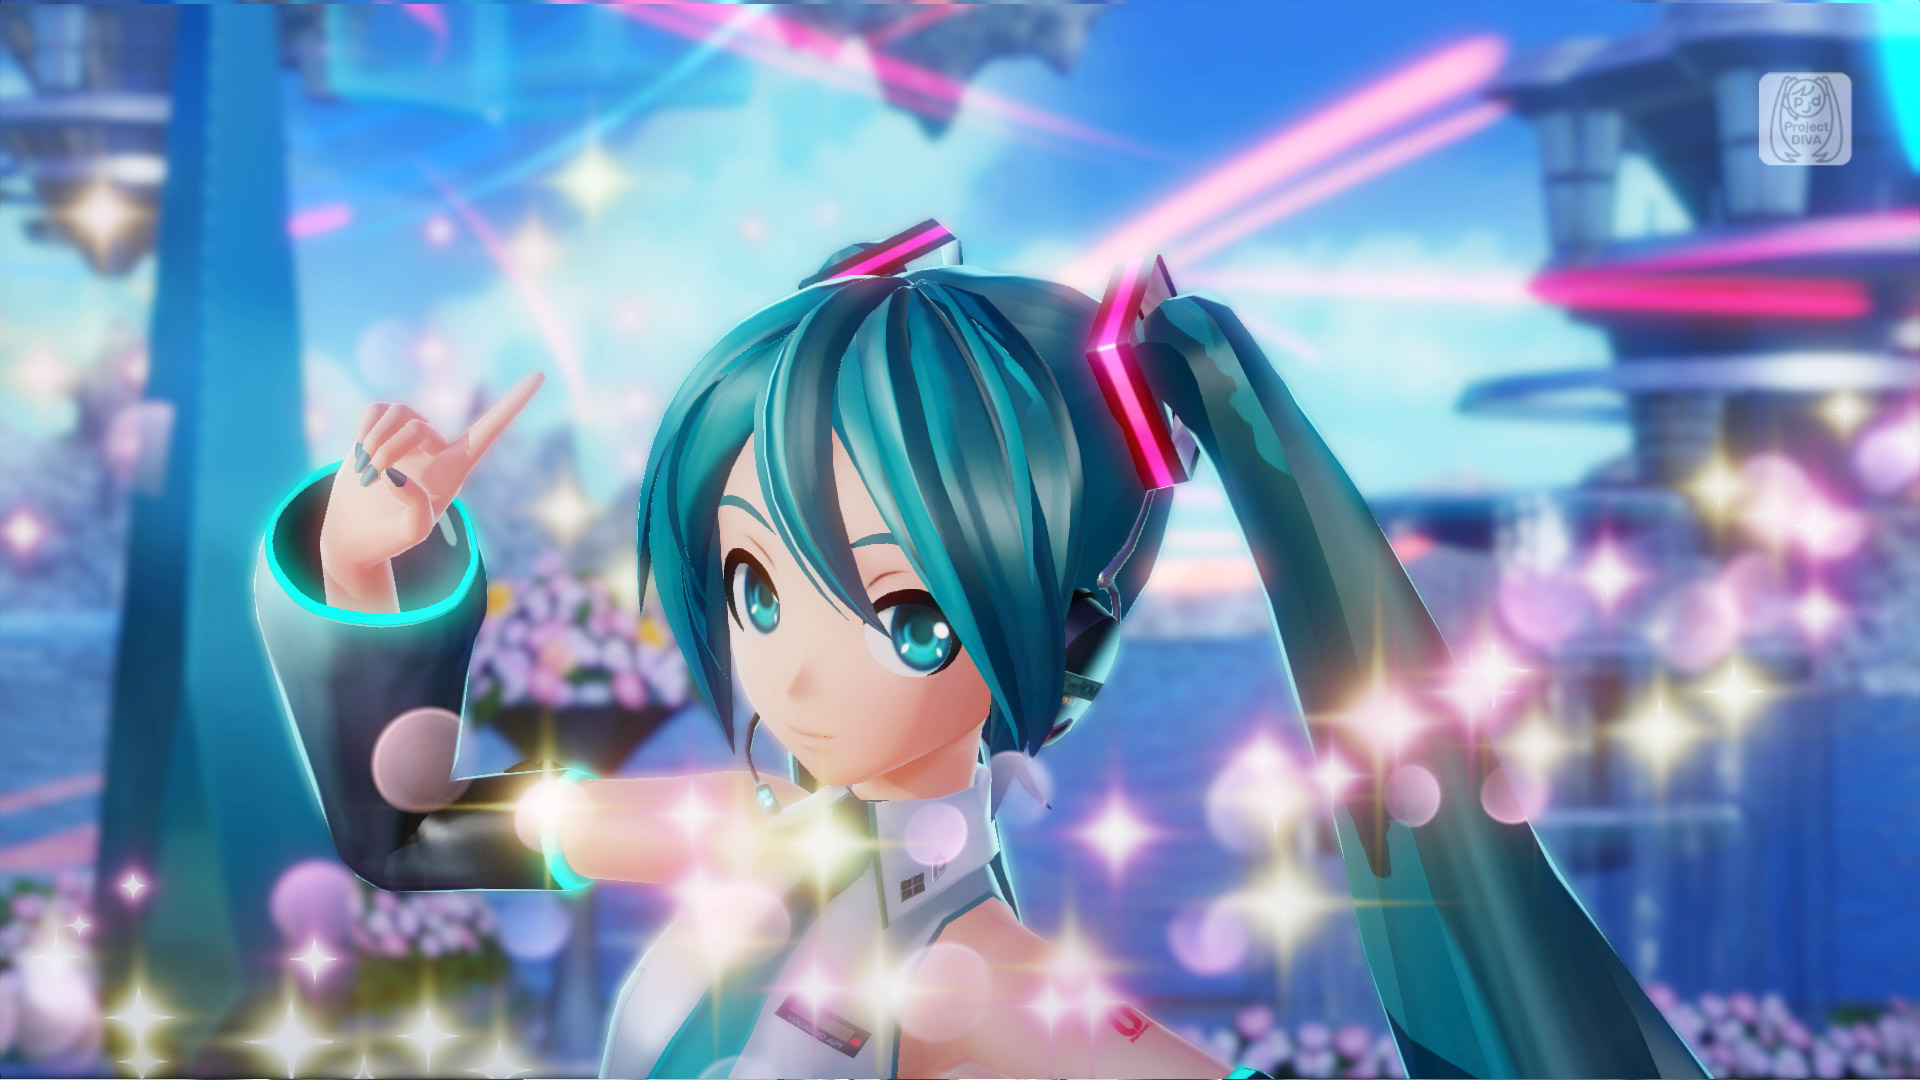 Project diva x adds sharing the world and hand in hand to its song lineup in japan - Hatsune miku project diva ...